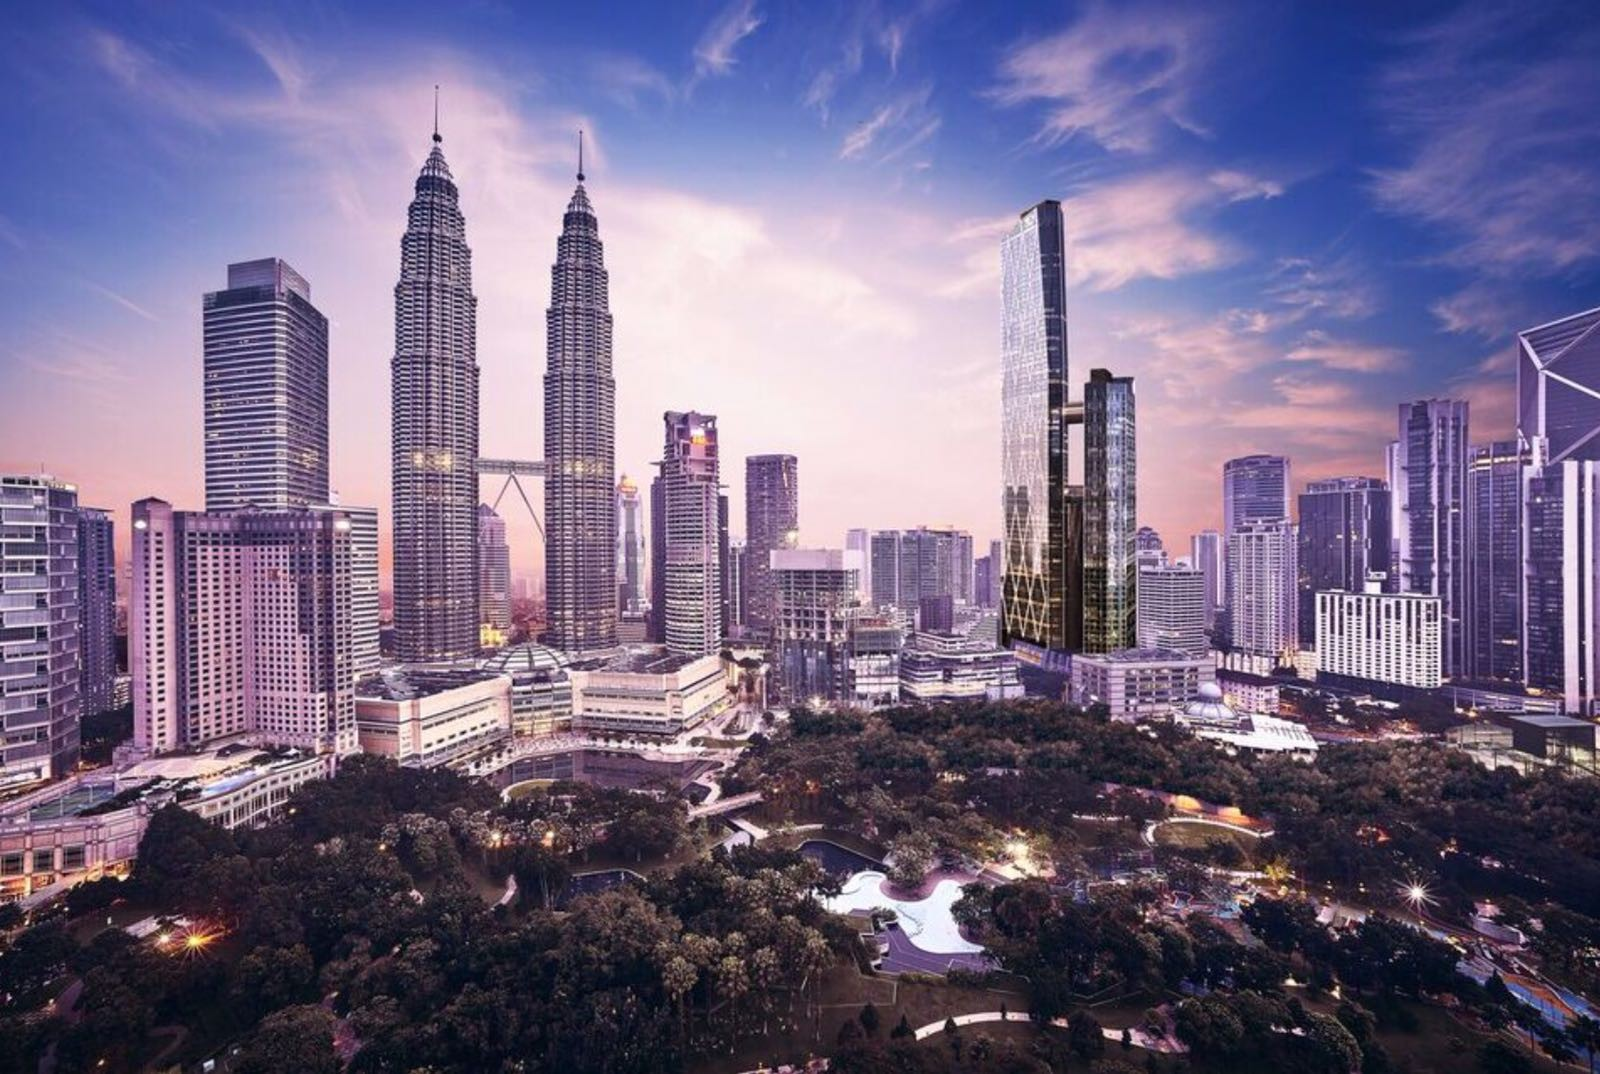 Petronas twin towers Pictures